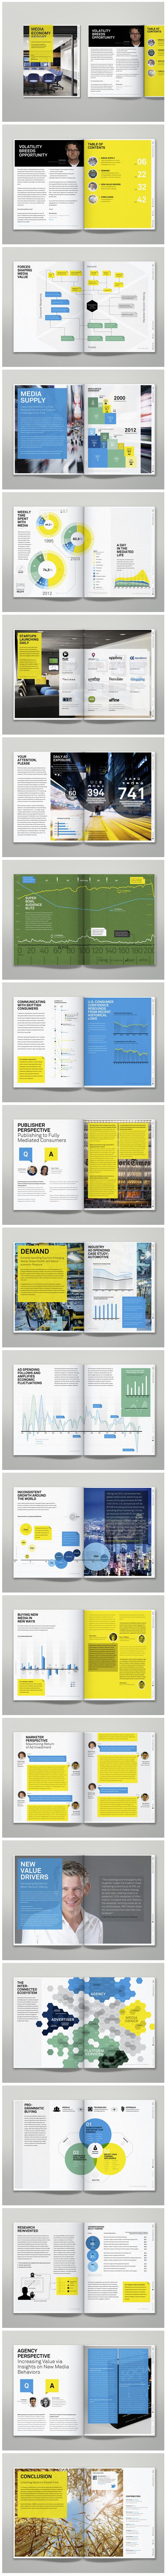 IPG Media Economy Report via Behance